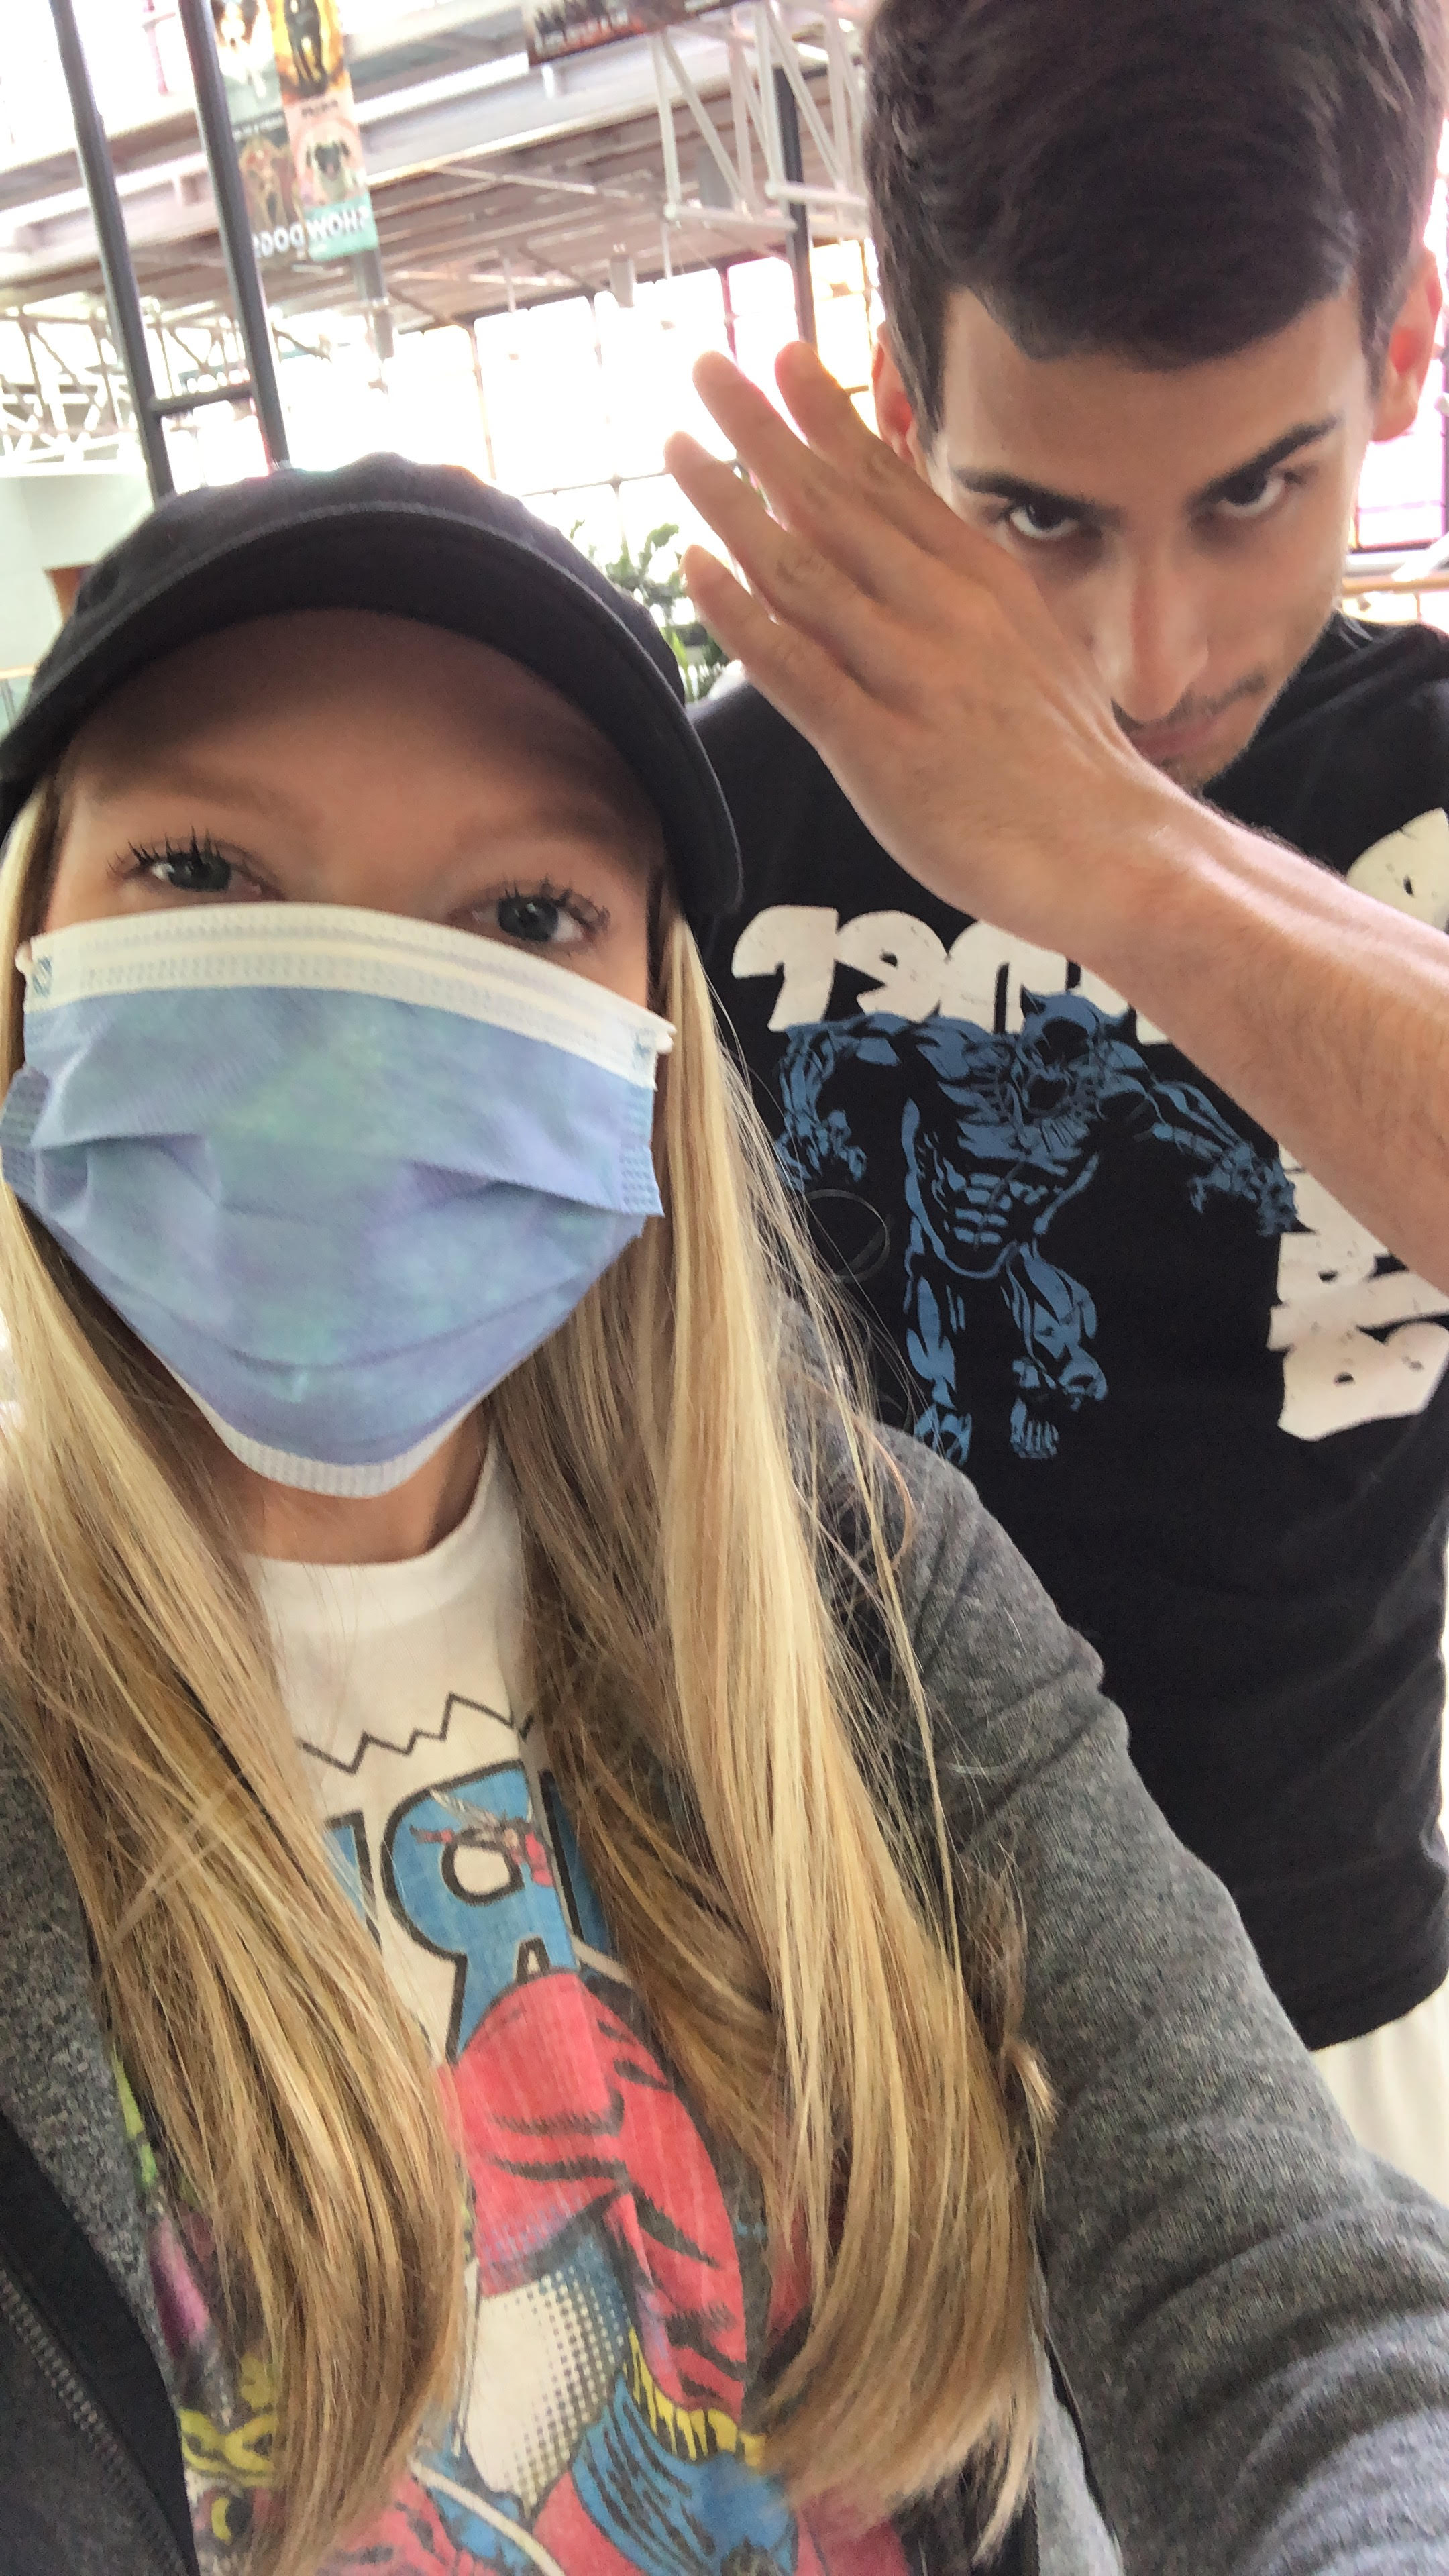 Halfway there - New challenges, same fight.Week OneSomething very very important to Timmy and I happened the day after my infusion this round. INFINITY WAR CAME OUT IN THEATERS. Literally nothing was going to stop me from seeing this movie on opening day. Peep that cute selfie of me in a mask and Marvel t-shirt for proof. Yep, I went straight from getting fluids to seeing the movie! I'll keep this blog a Marvel spoilers free zone, don't worry. Why the mask though? Well, we found out during my infusion day that my white blood cell counts had dropped pretty low, which means I was super susceptible to infection. The doctors let me get my treatment but made me promise to wear a mask out and come back to get labs drawn the following week. My counts dropped even more after treatment and I had to get a Neulasta shot to boost them.Week TwoBefore heading to University of Florida for my little brother's graduation, I had to go back to the docs to check in on my counts. The Neulasta shot that I had been given wasn't kicking in yet and my white blood cell counts were still super low. We were already taking precautions to keep me safe and healthy for the graduation, but my doctor also ordered me to get a Neupogen shot to boost the counts even quicker. More about graduation weekend in a separate post, but after returning home to Orlando, I had labs drawn again and we found out the shots worked perfectly! I still need to be cautious but my doctors are happy with where my counts are.Week ThreeI was feeling well enough to go back to my apartment in Miami for a few days. I only slept there 2 nights but I was excited to be able to go back for even 48 hours, see my coworkers and go out to a delicious team dinner at KYU in Wynwood. I was also stoked to receive a promotion in my annual review! It's nice to know that my hard work is being recognized, especially through all the tough times I've been going through personally the past several months.Another bright spot? I won my company's Su